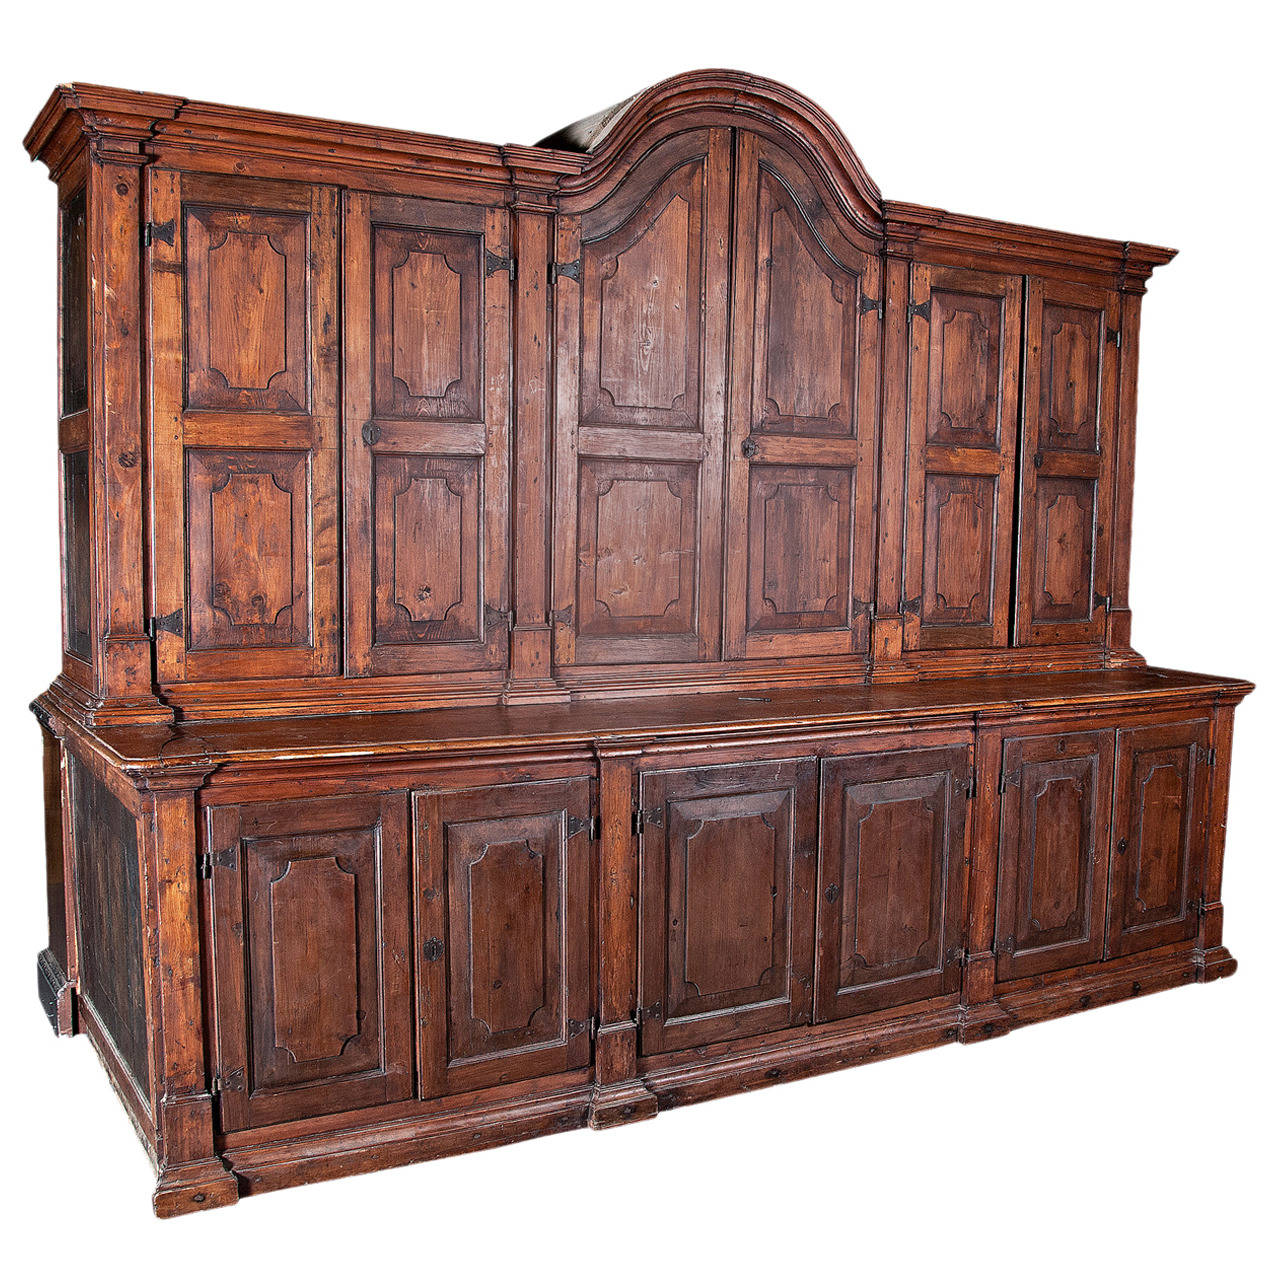 spanish colonial massive cabinet circa 1800 at 1stdibs. Black Bedroom Furniture Sets. Home Design Ideas